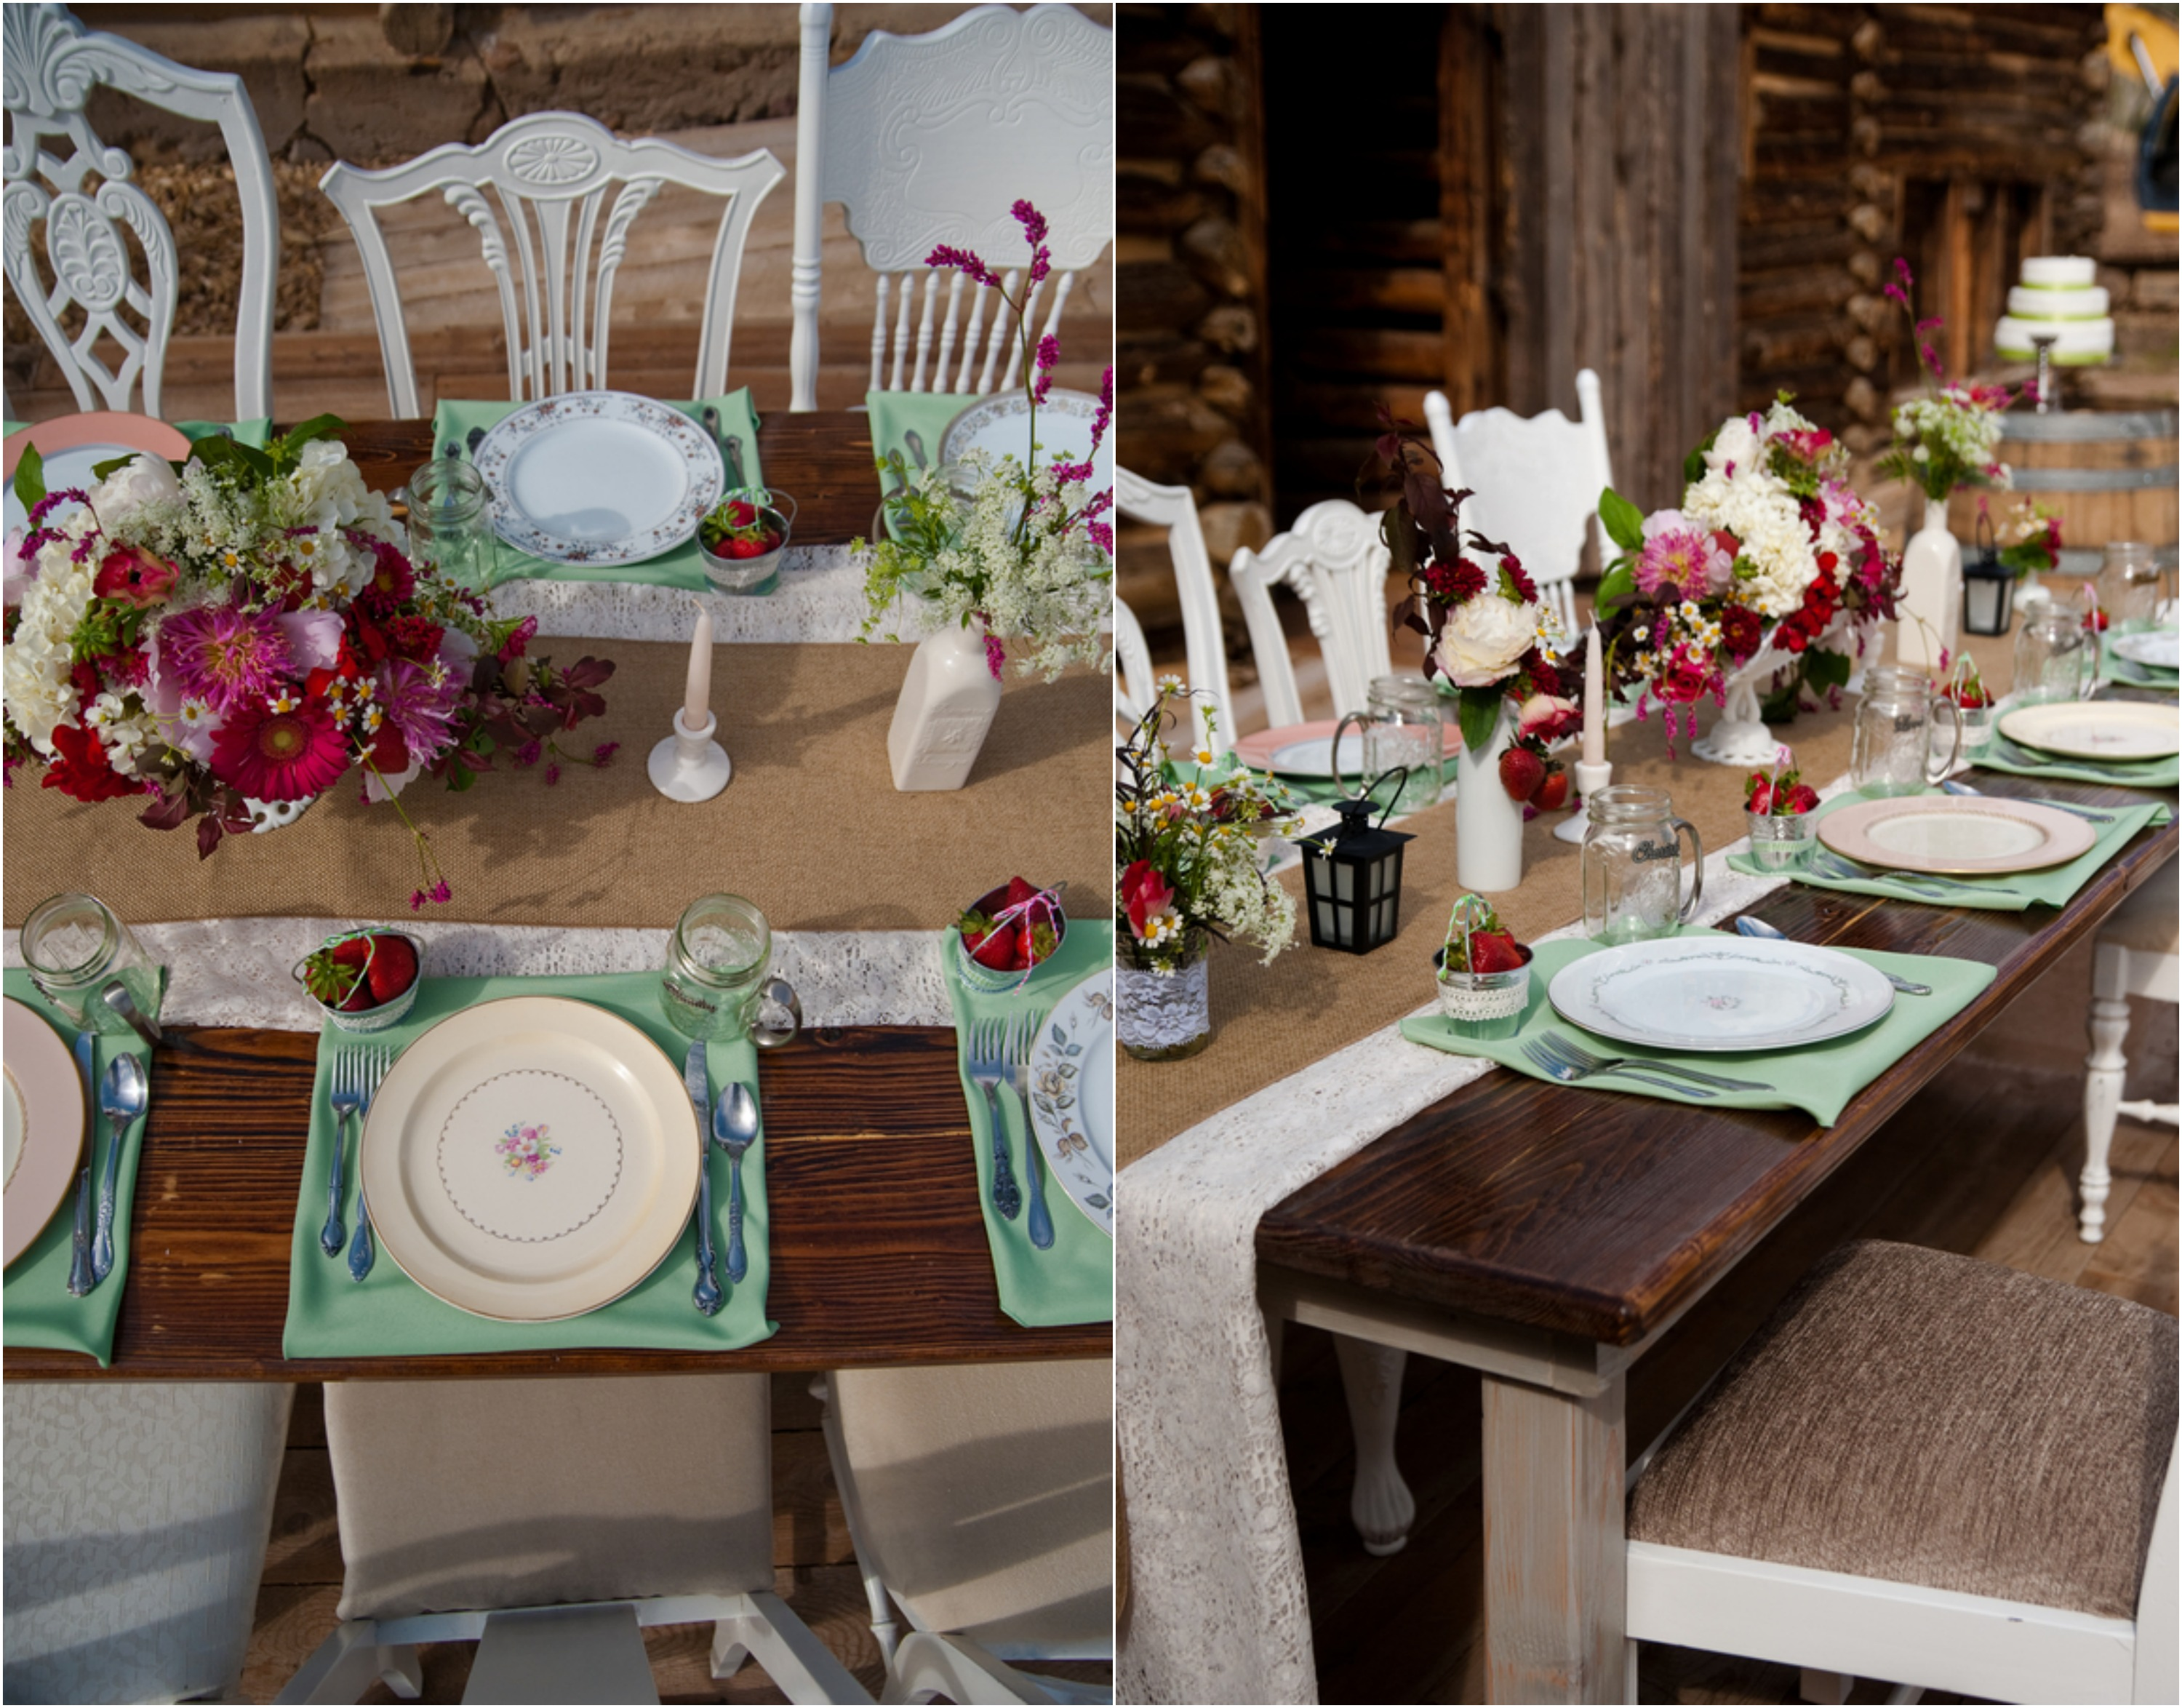 My Stuff Room  Galoreious Stuff Rustic Natural Woodsy Wedding Looks